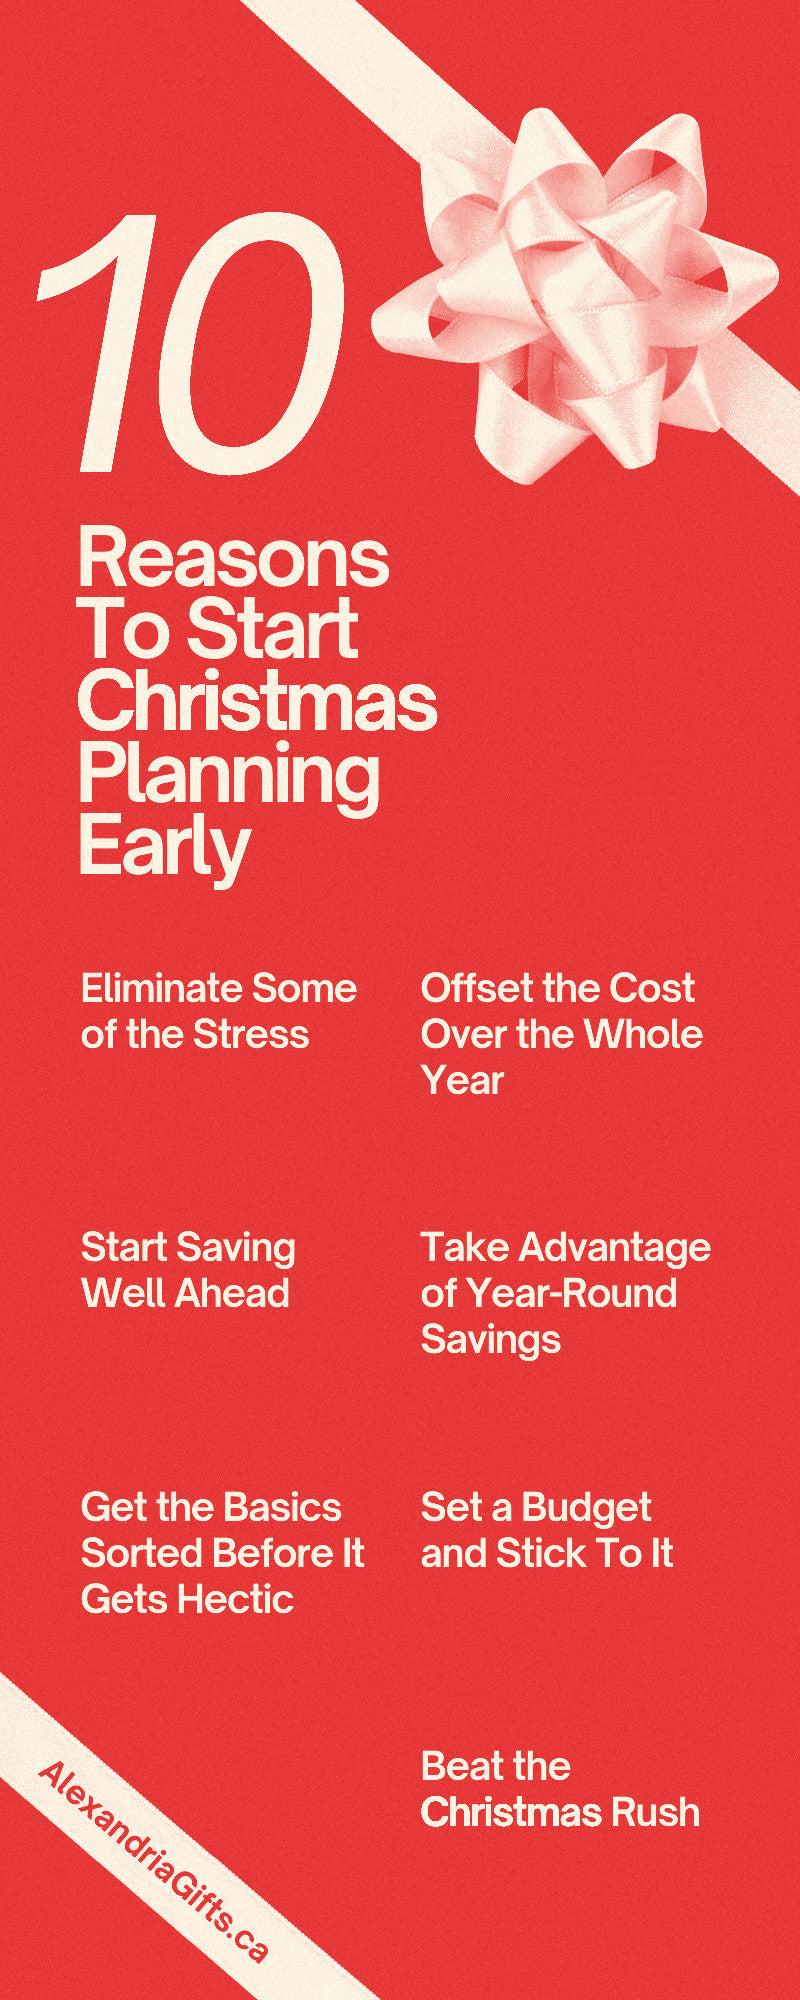 10 Reasons To Start Christmas Planning Early